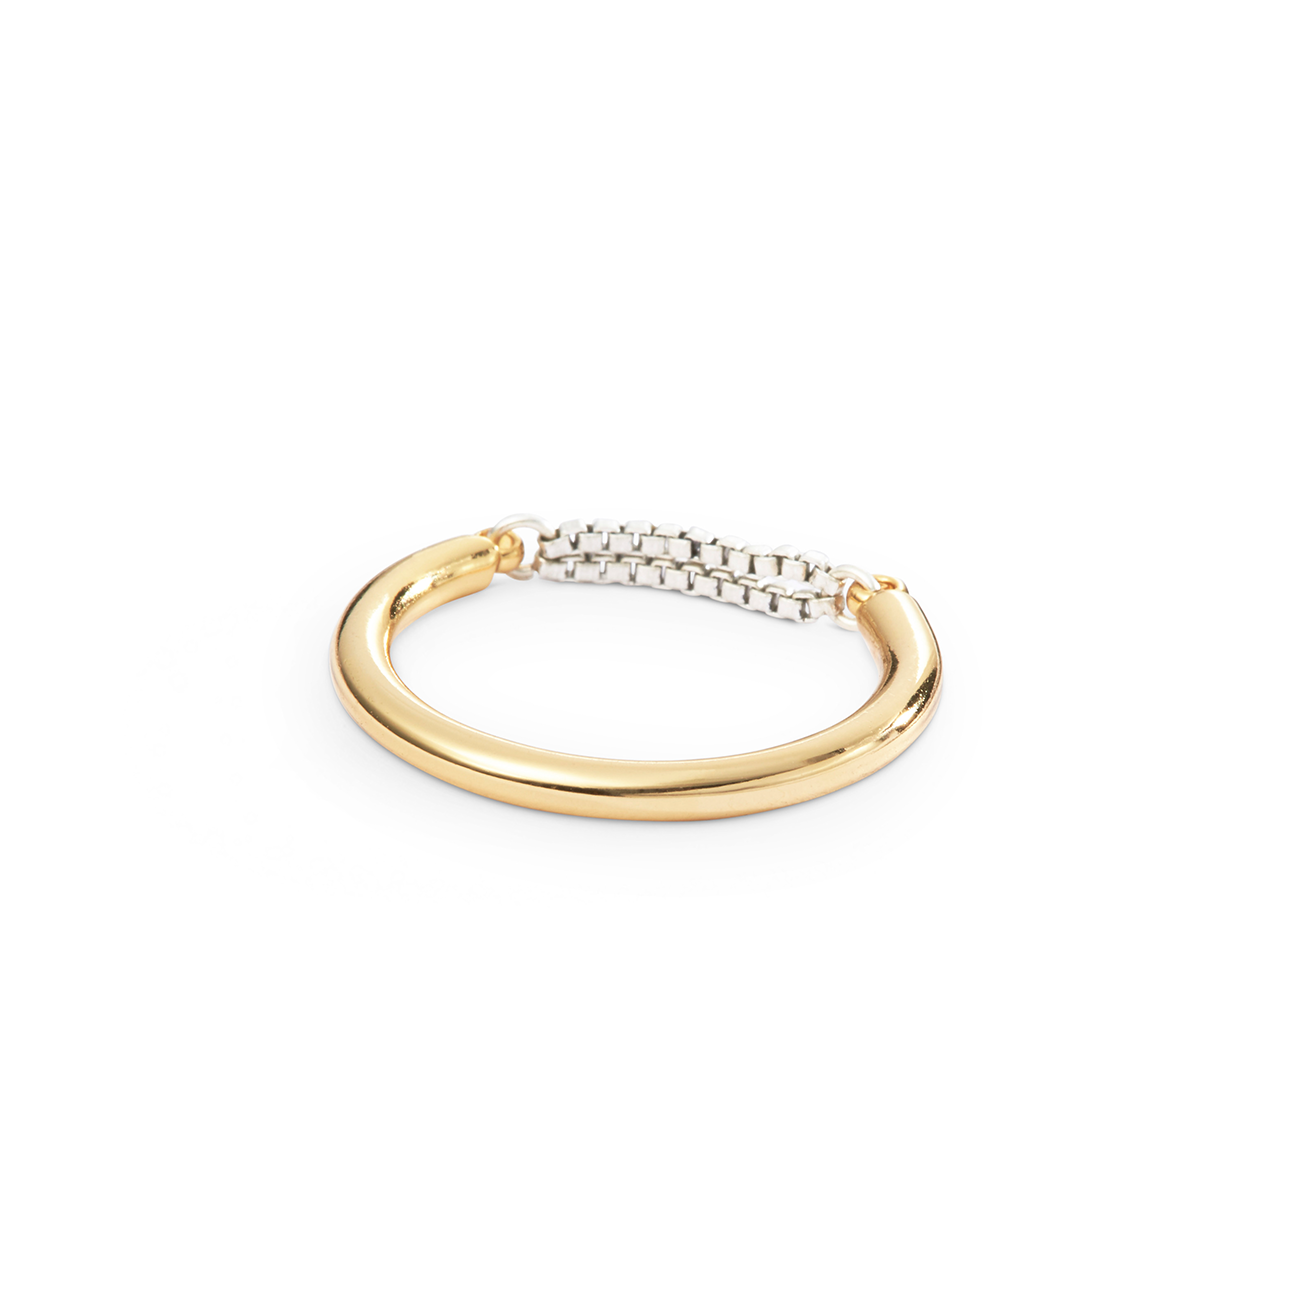 Gold and silver dainty chain Sadie Ring by Jenny Bird